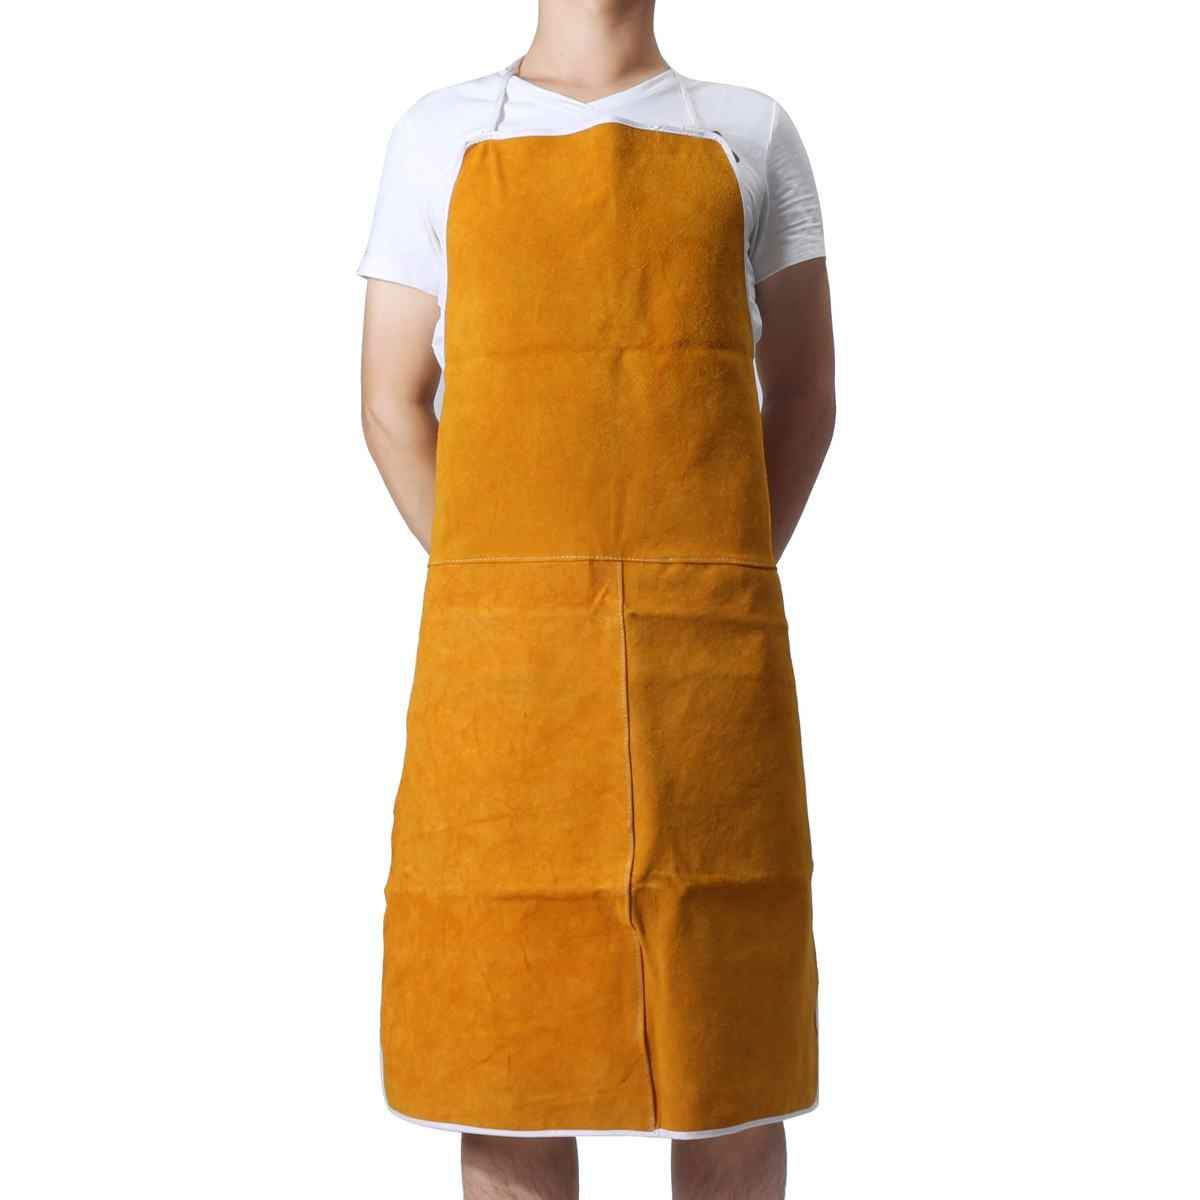 Free Shipping Cowhide Welding Welders Aprons Work Safety Workwear Glaziers Blacksmith Apron 93x64cm Safety Clothing